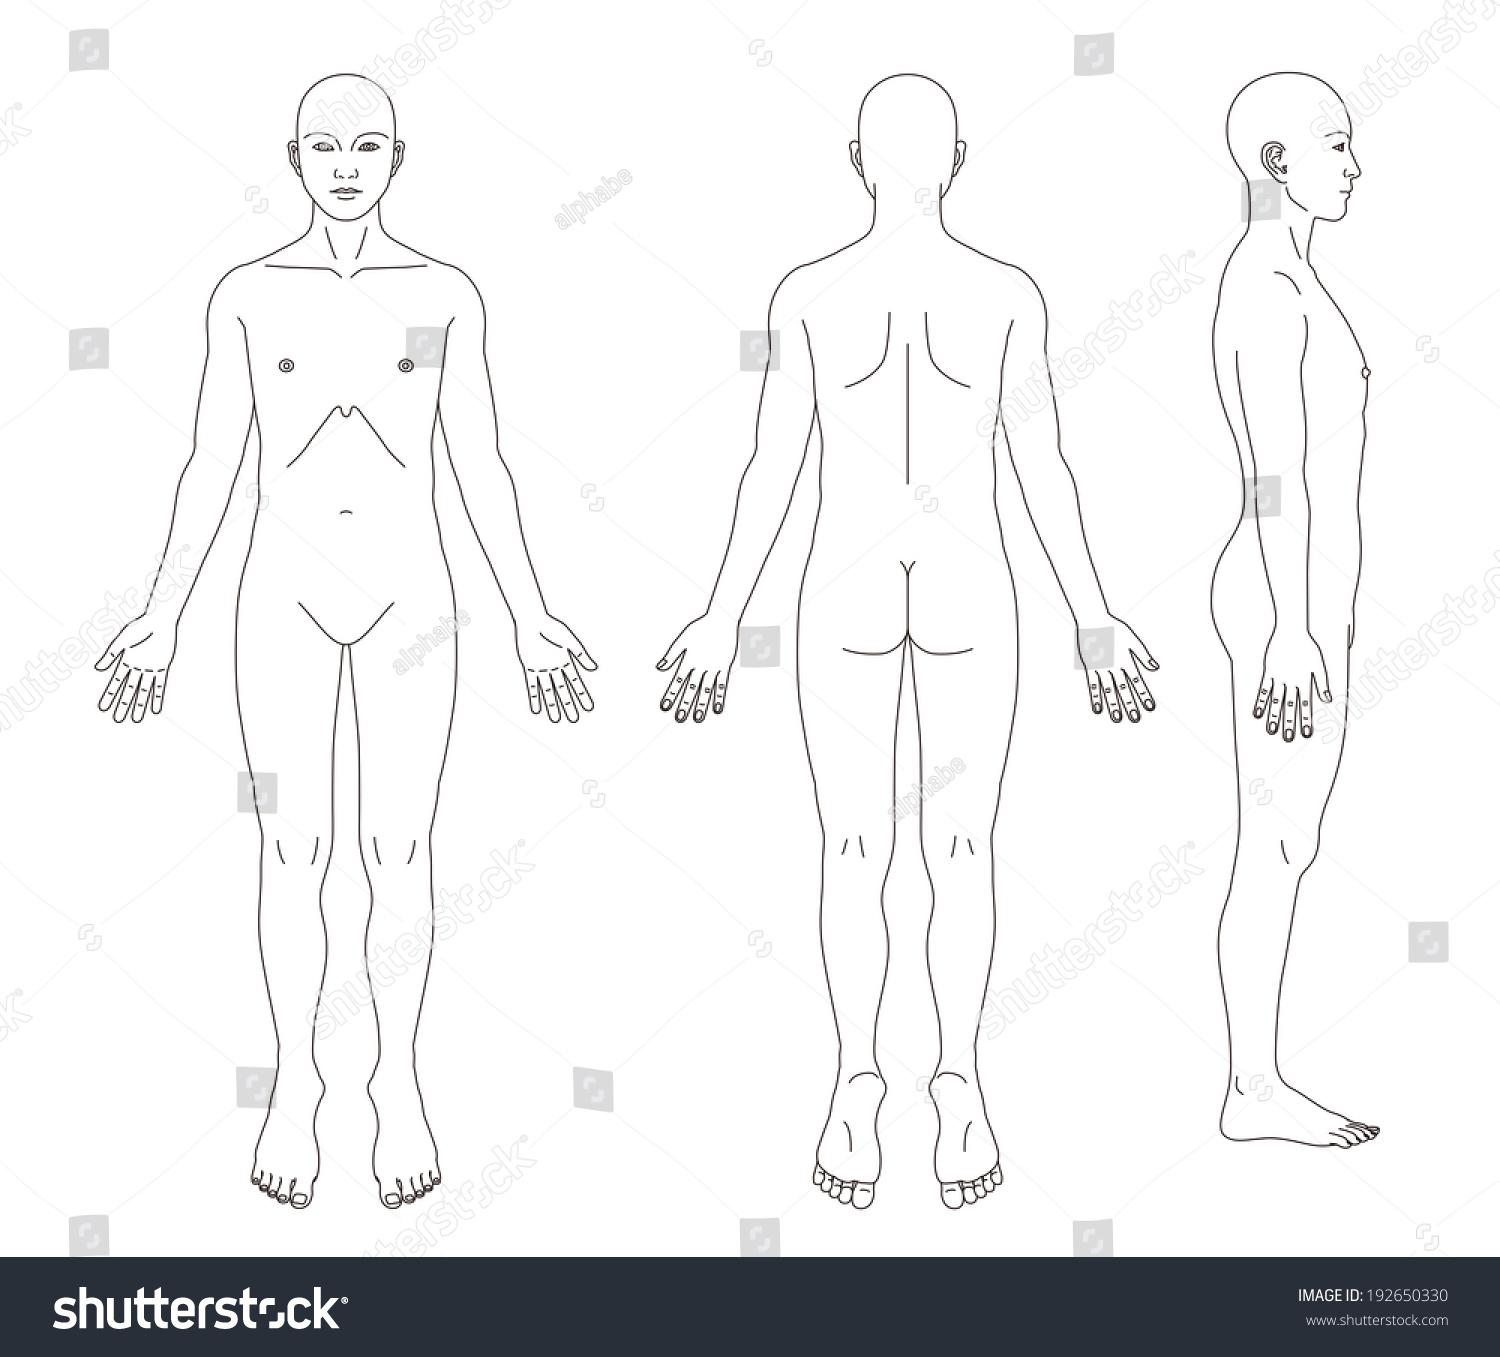 Arts of humans body or sex